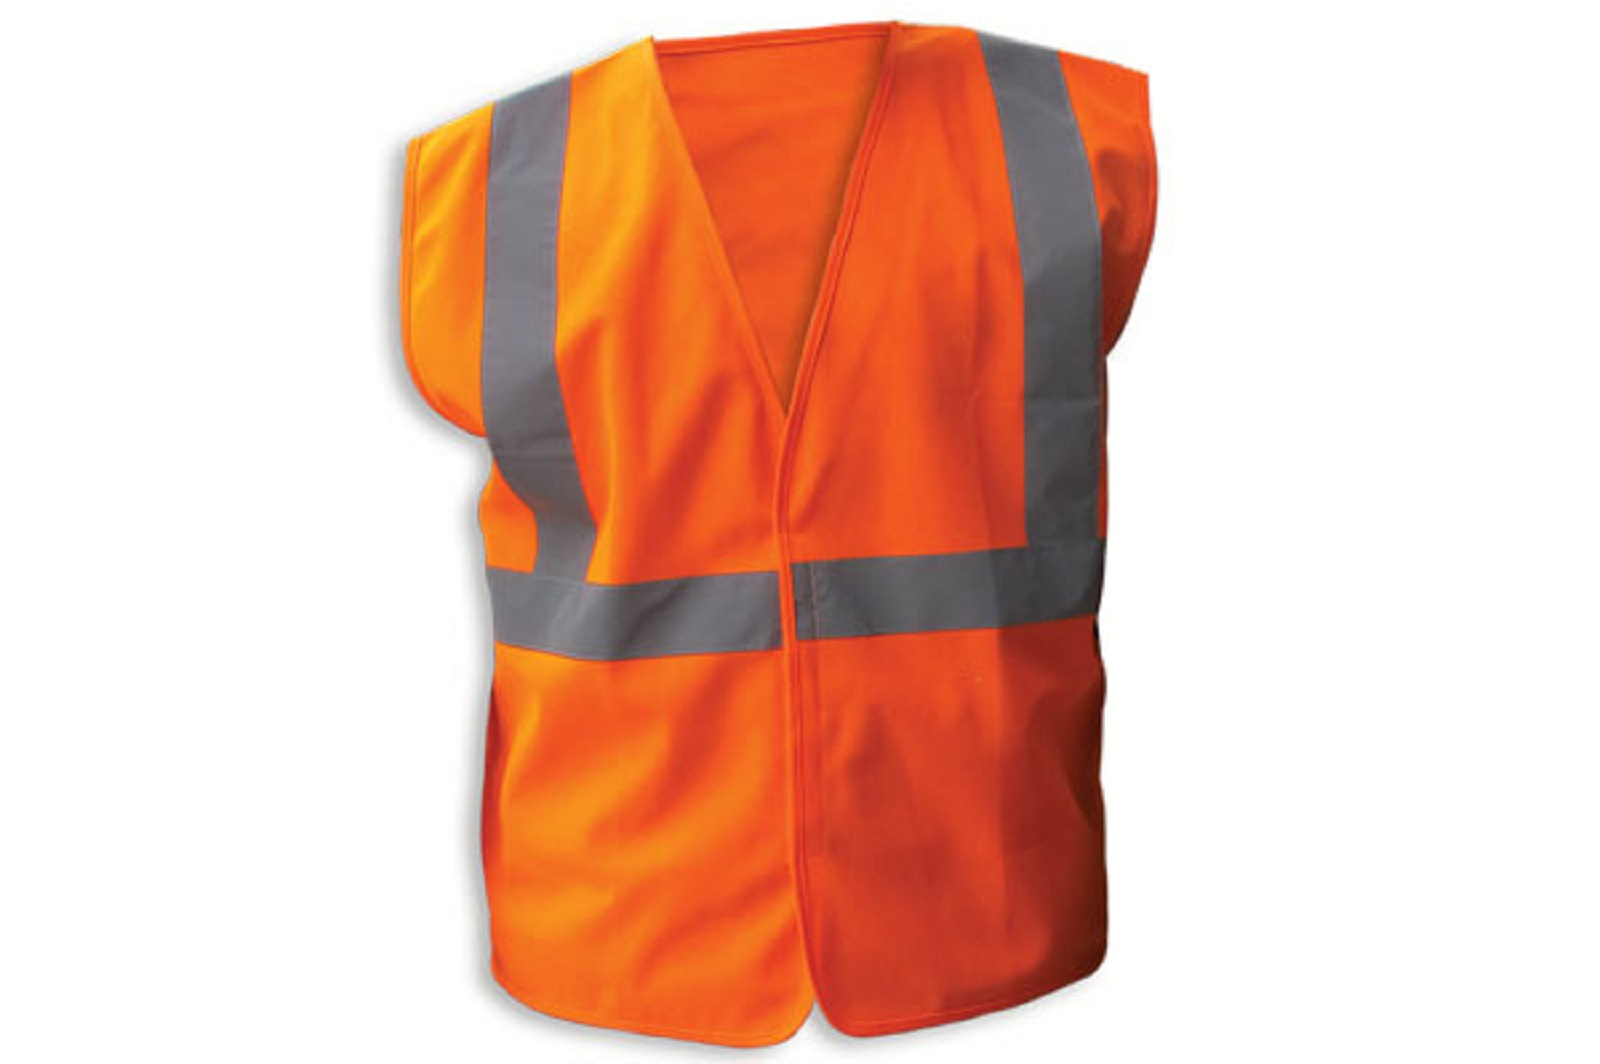 Enguard ORANGE Poly Fabric Reflective Safety Vests, Class 2 L, 3-Pack by Jaydee Group